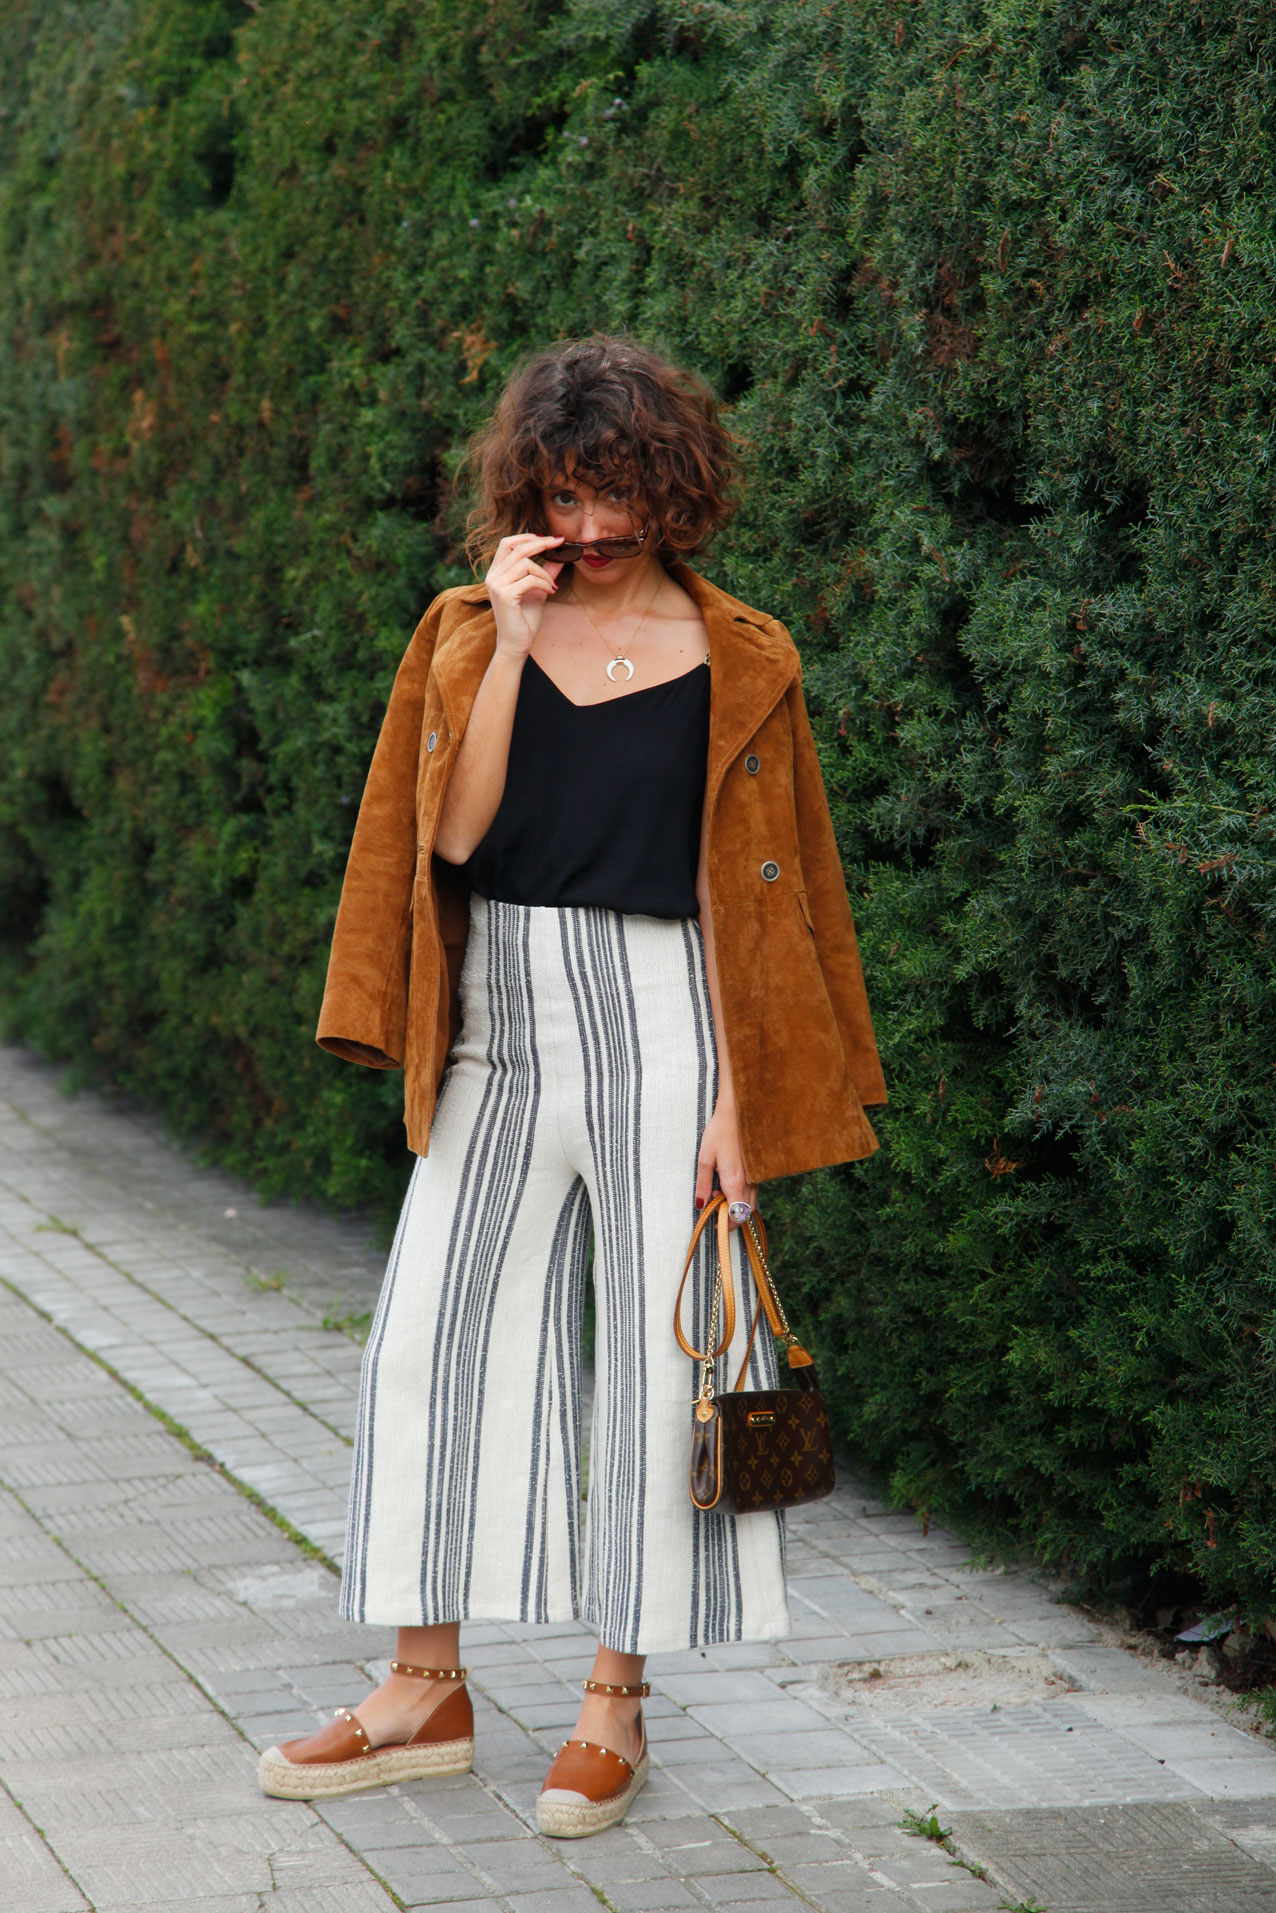 spring_time_look-streetstyle-polin_et_moi-cool_lemonade